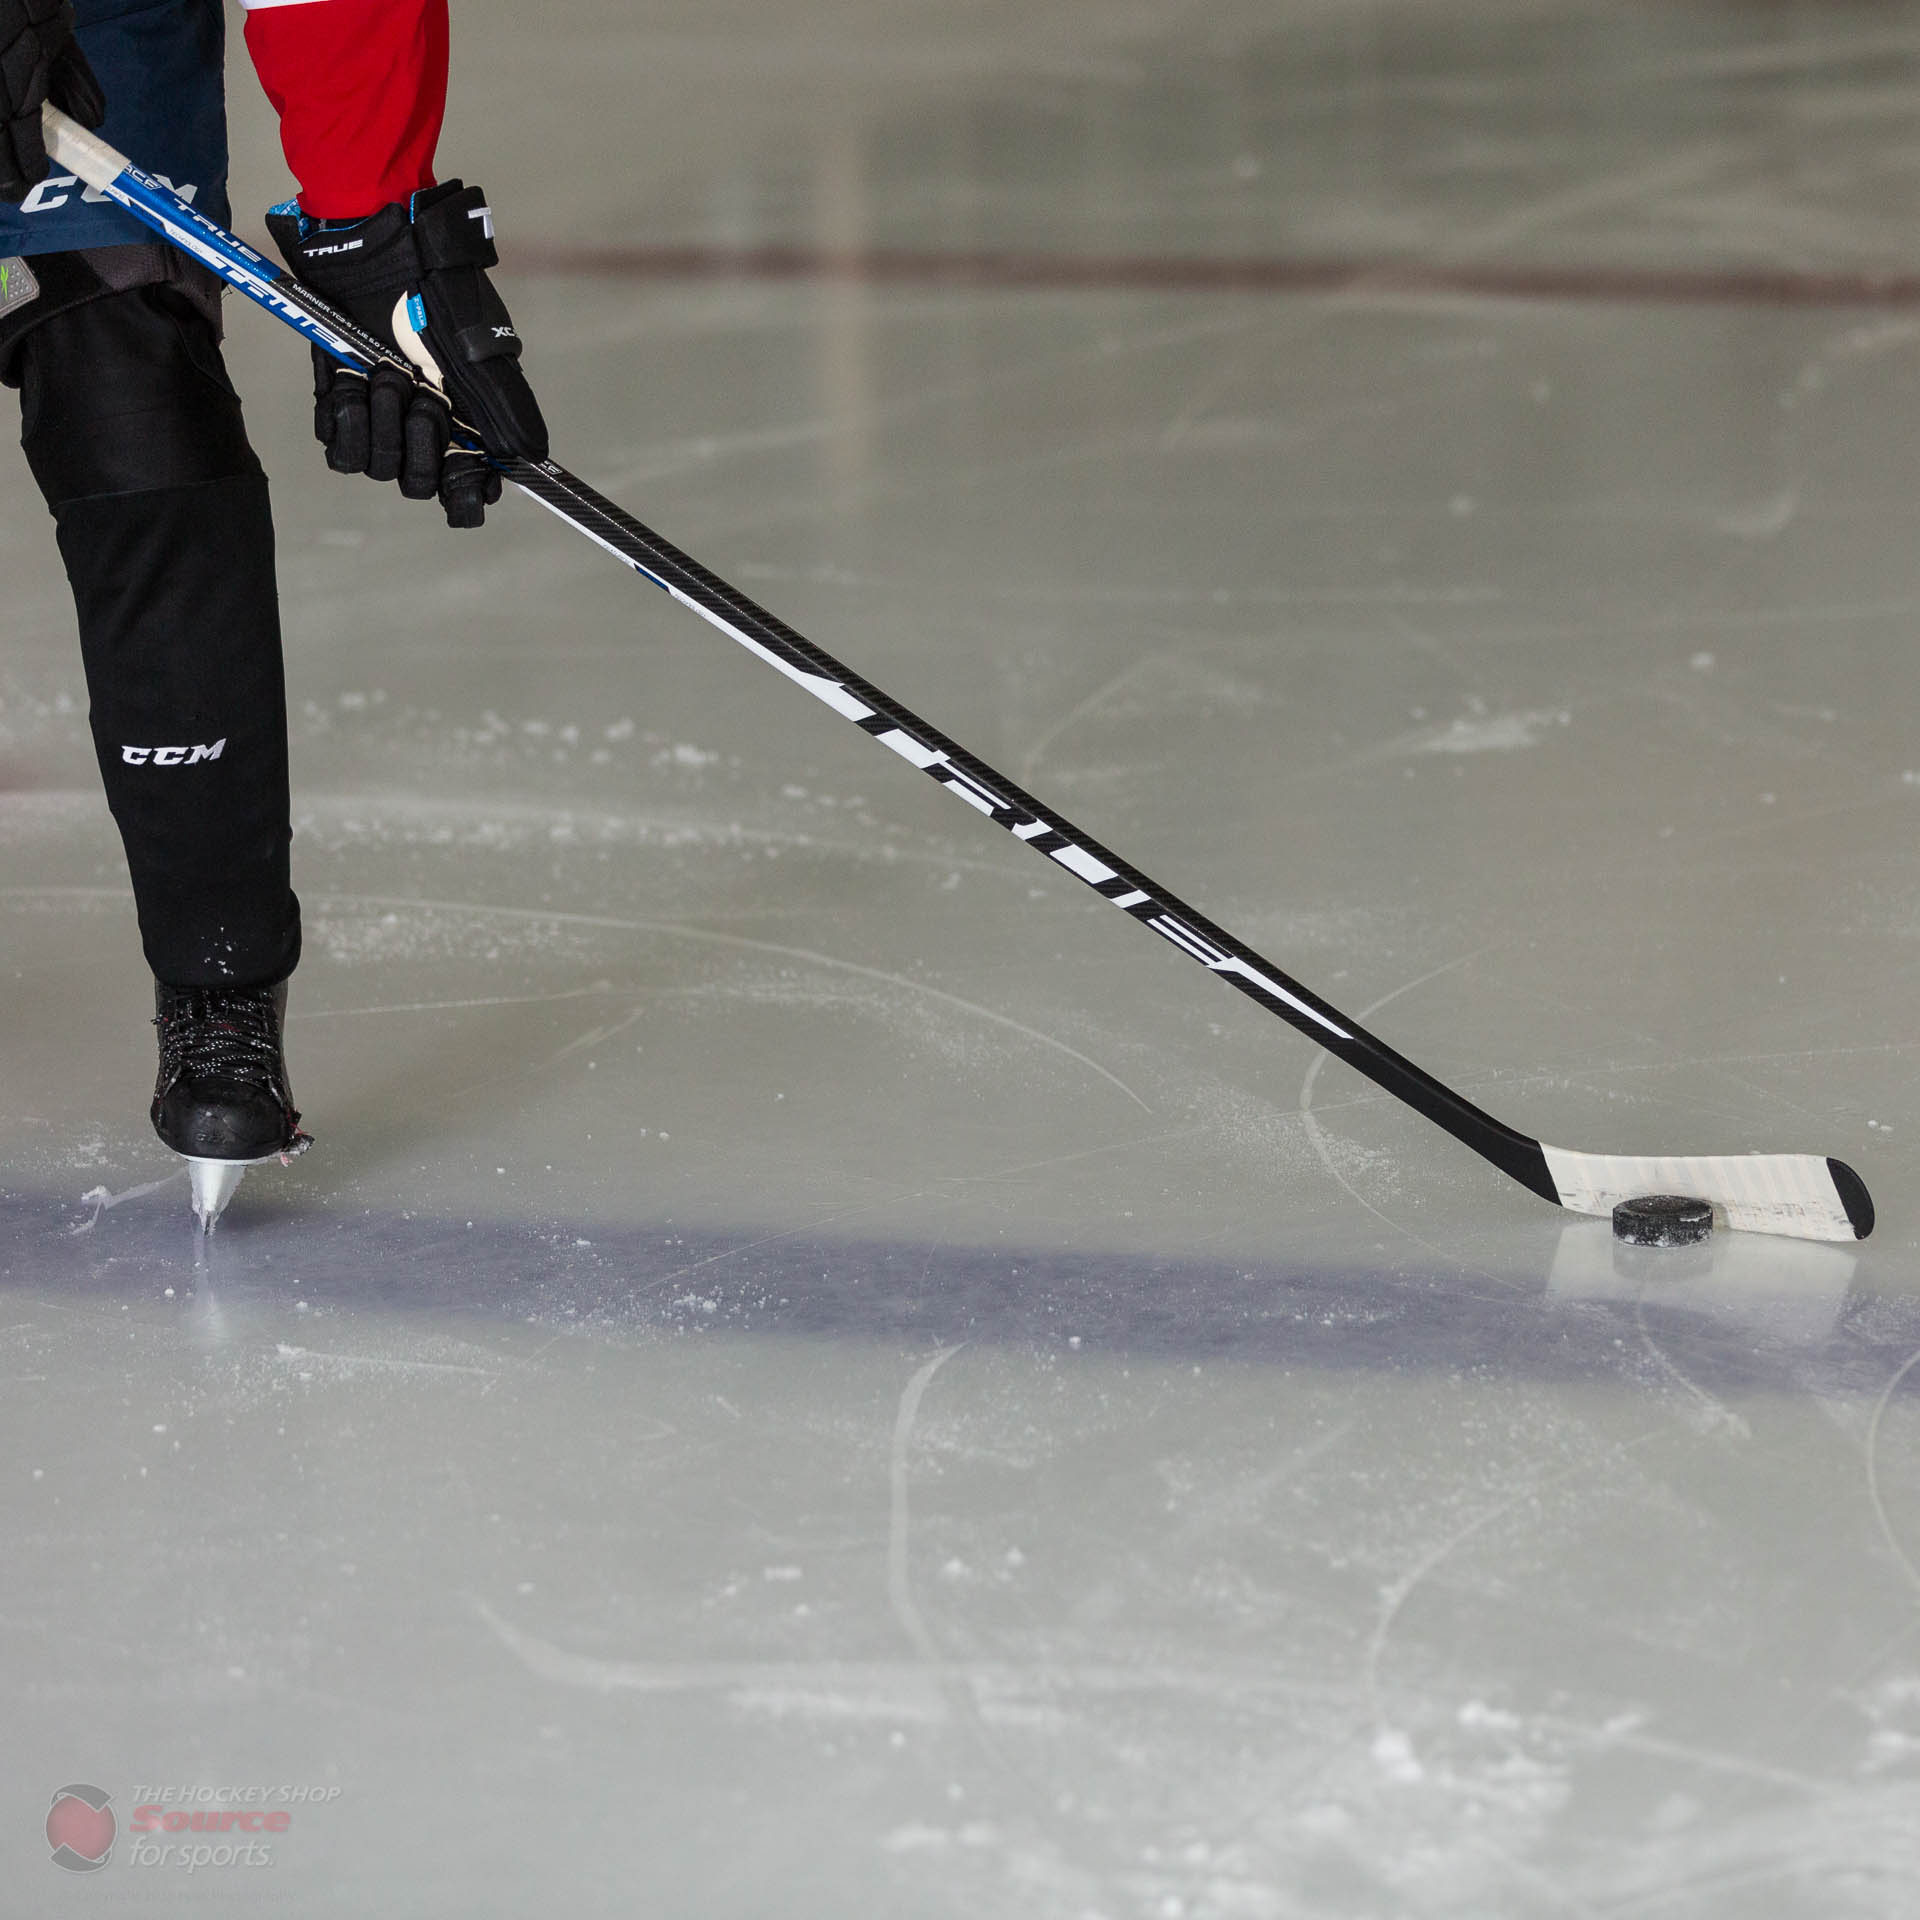 3680c0f32a6c2 2019 True XC9 ACF Hockey Stick Review – The Hockey Shop Source For ...